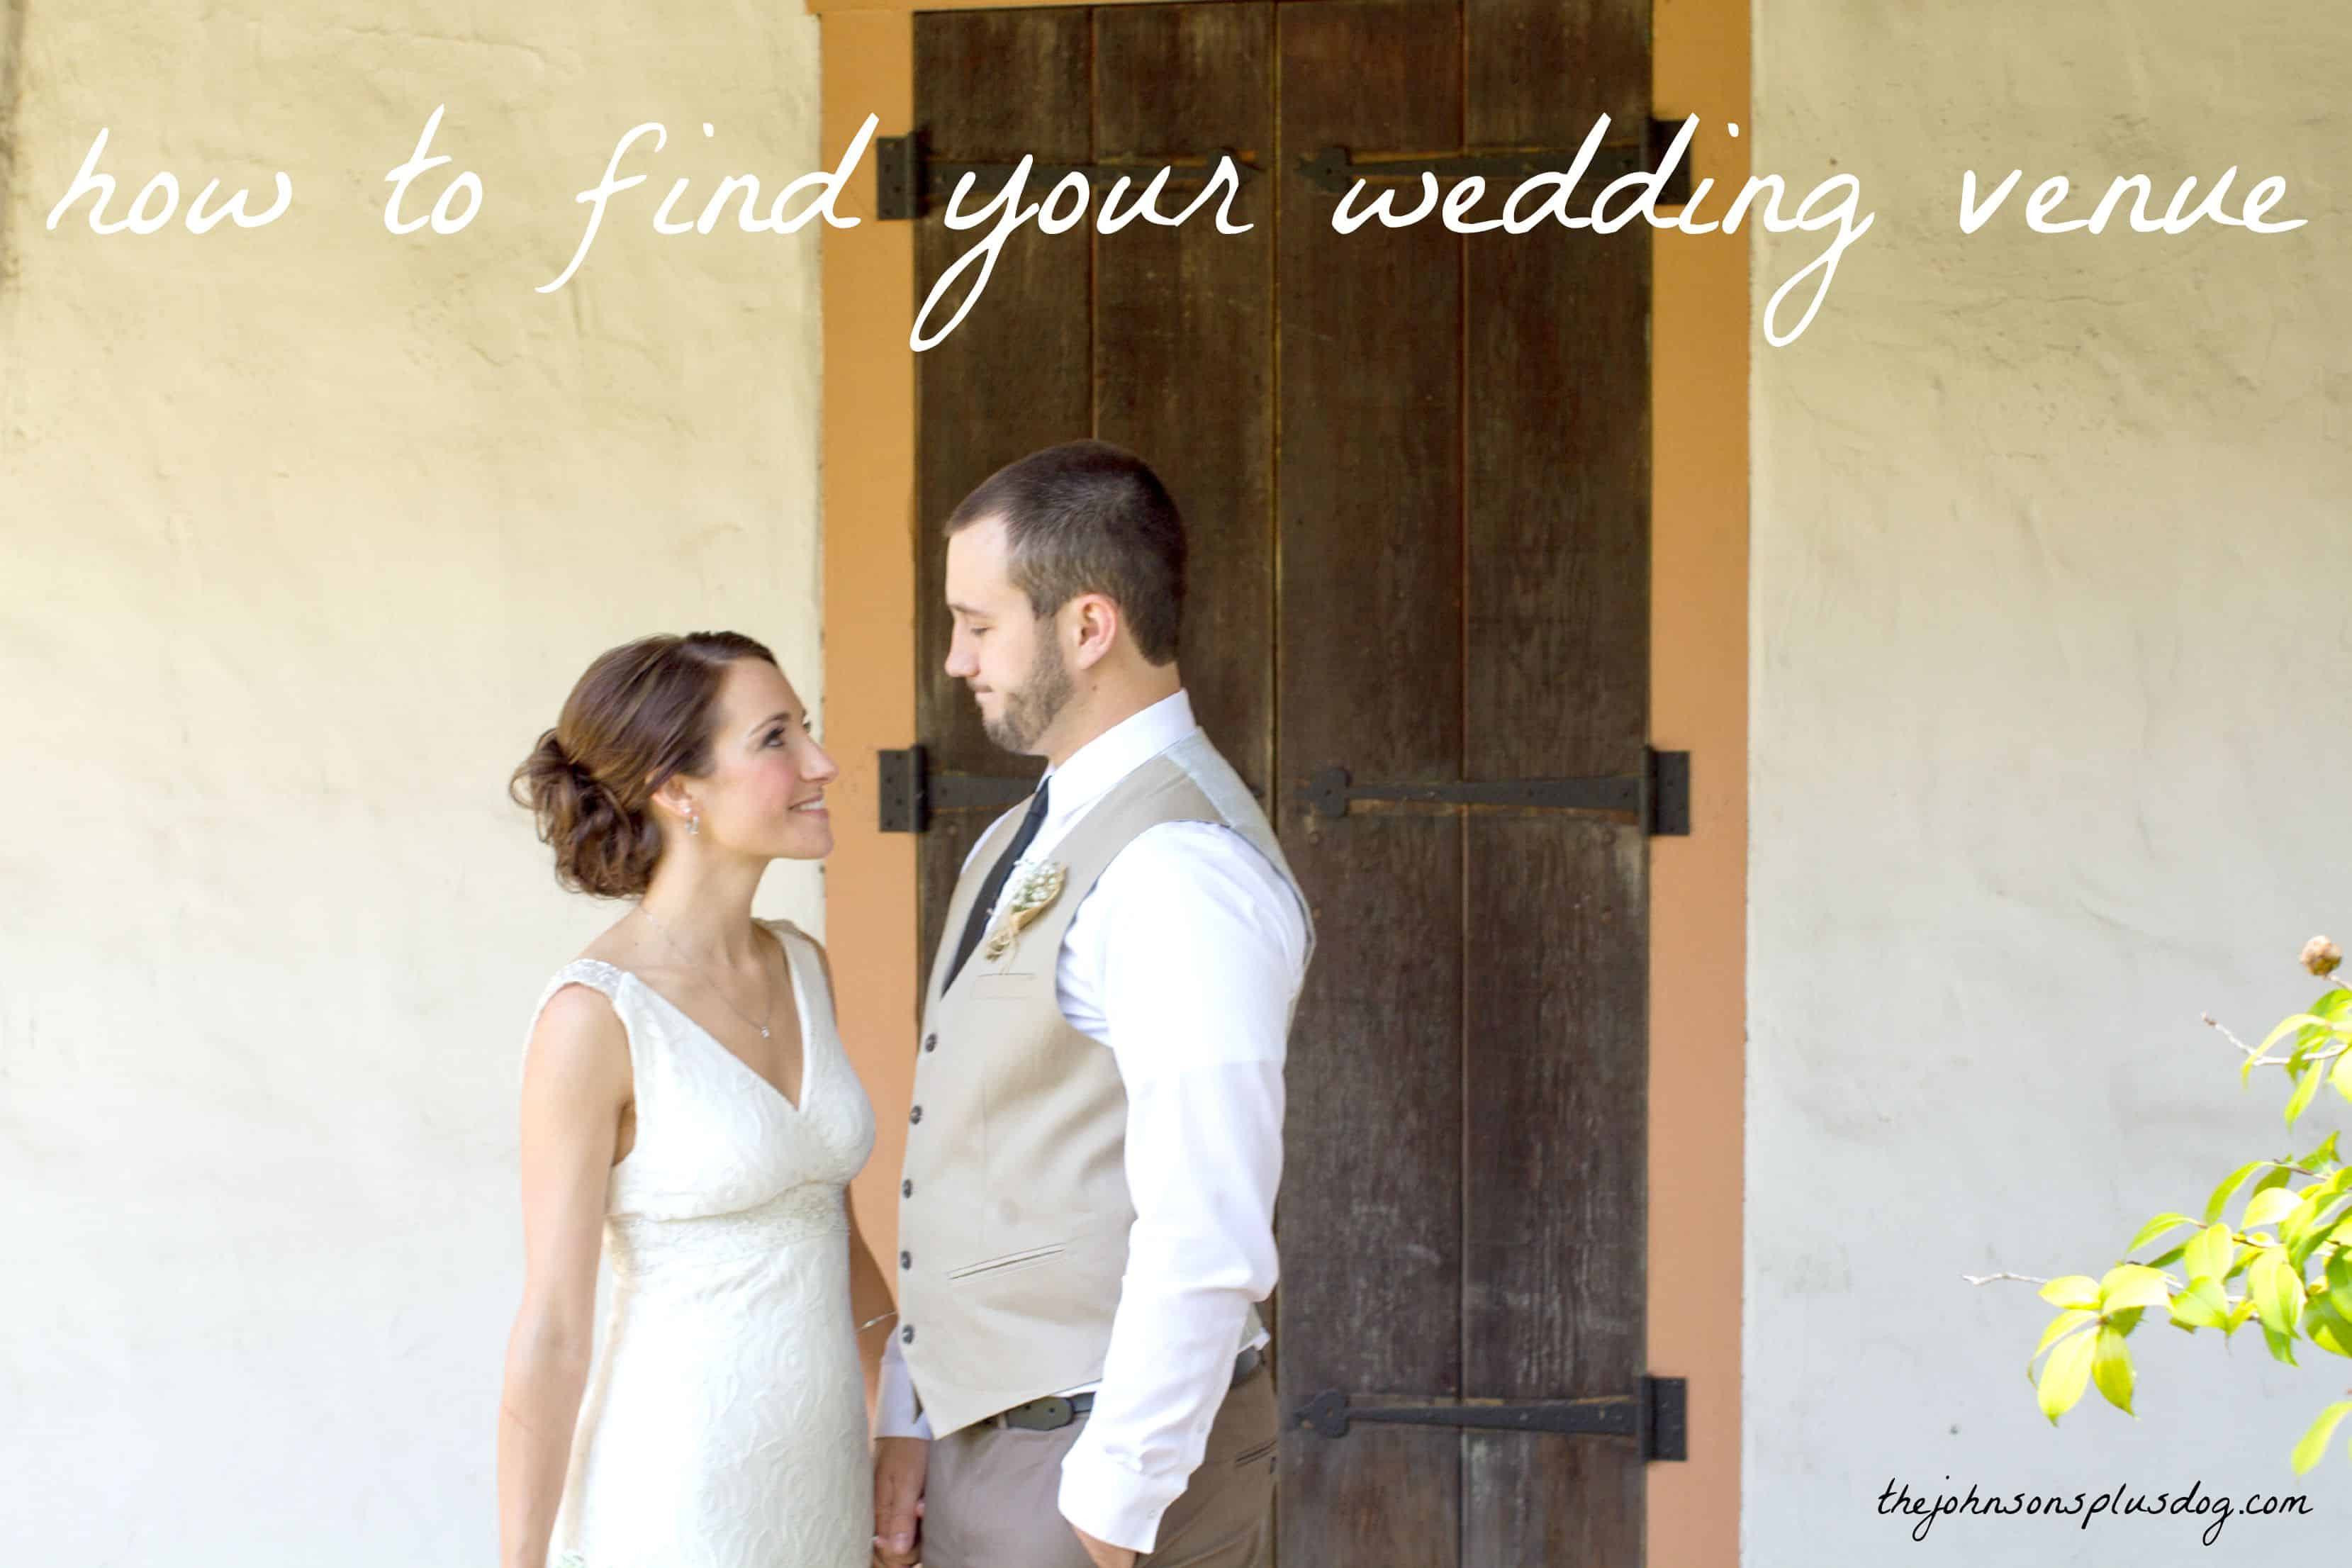 How To Find Your Wedding Venue